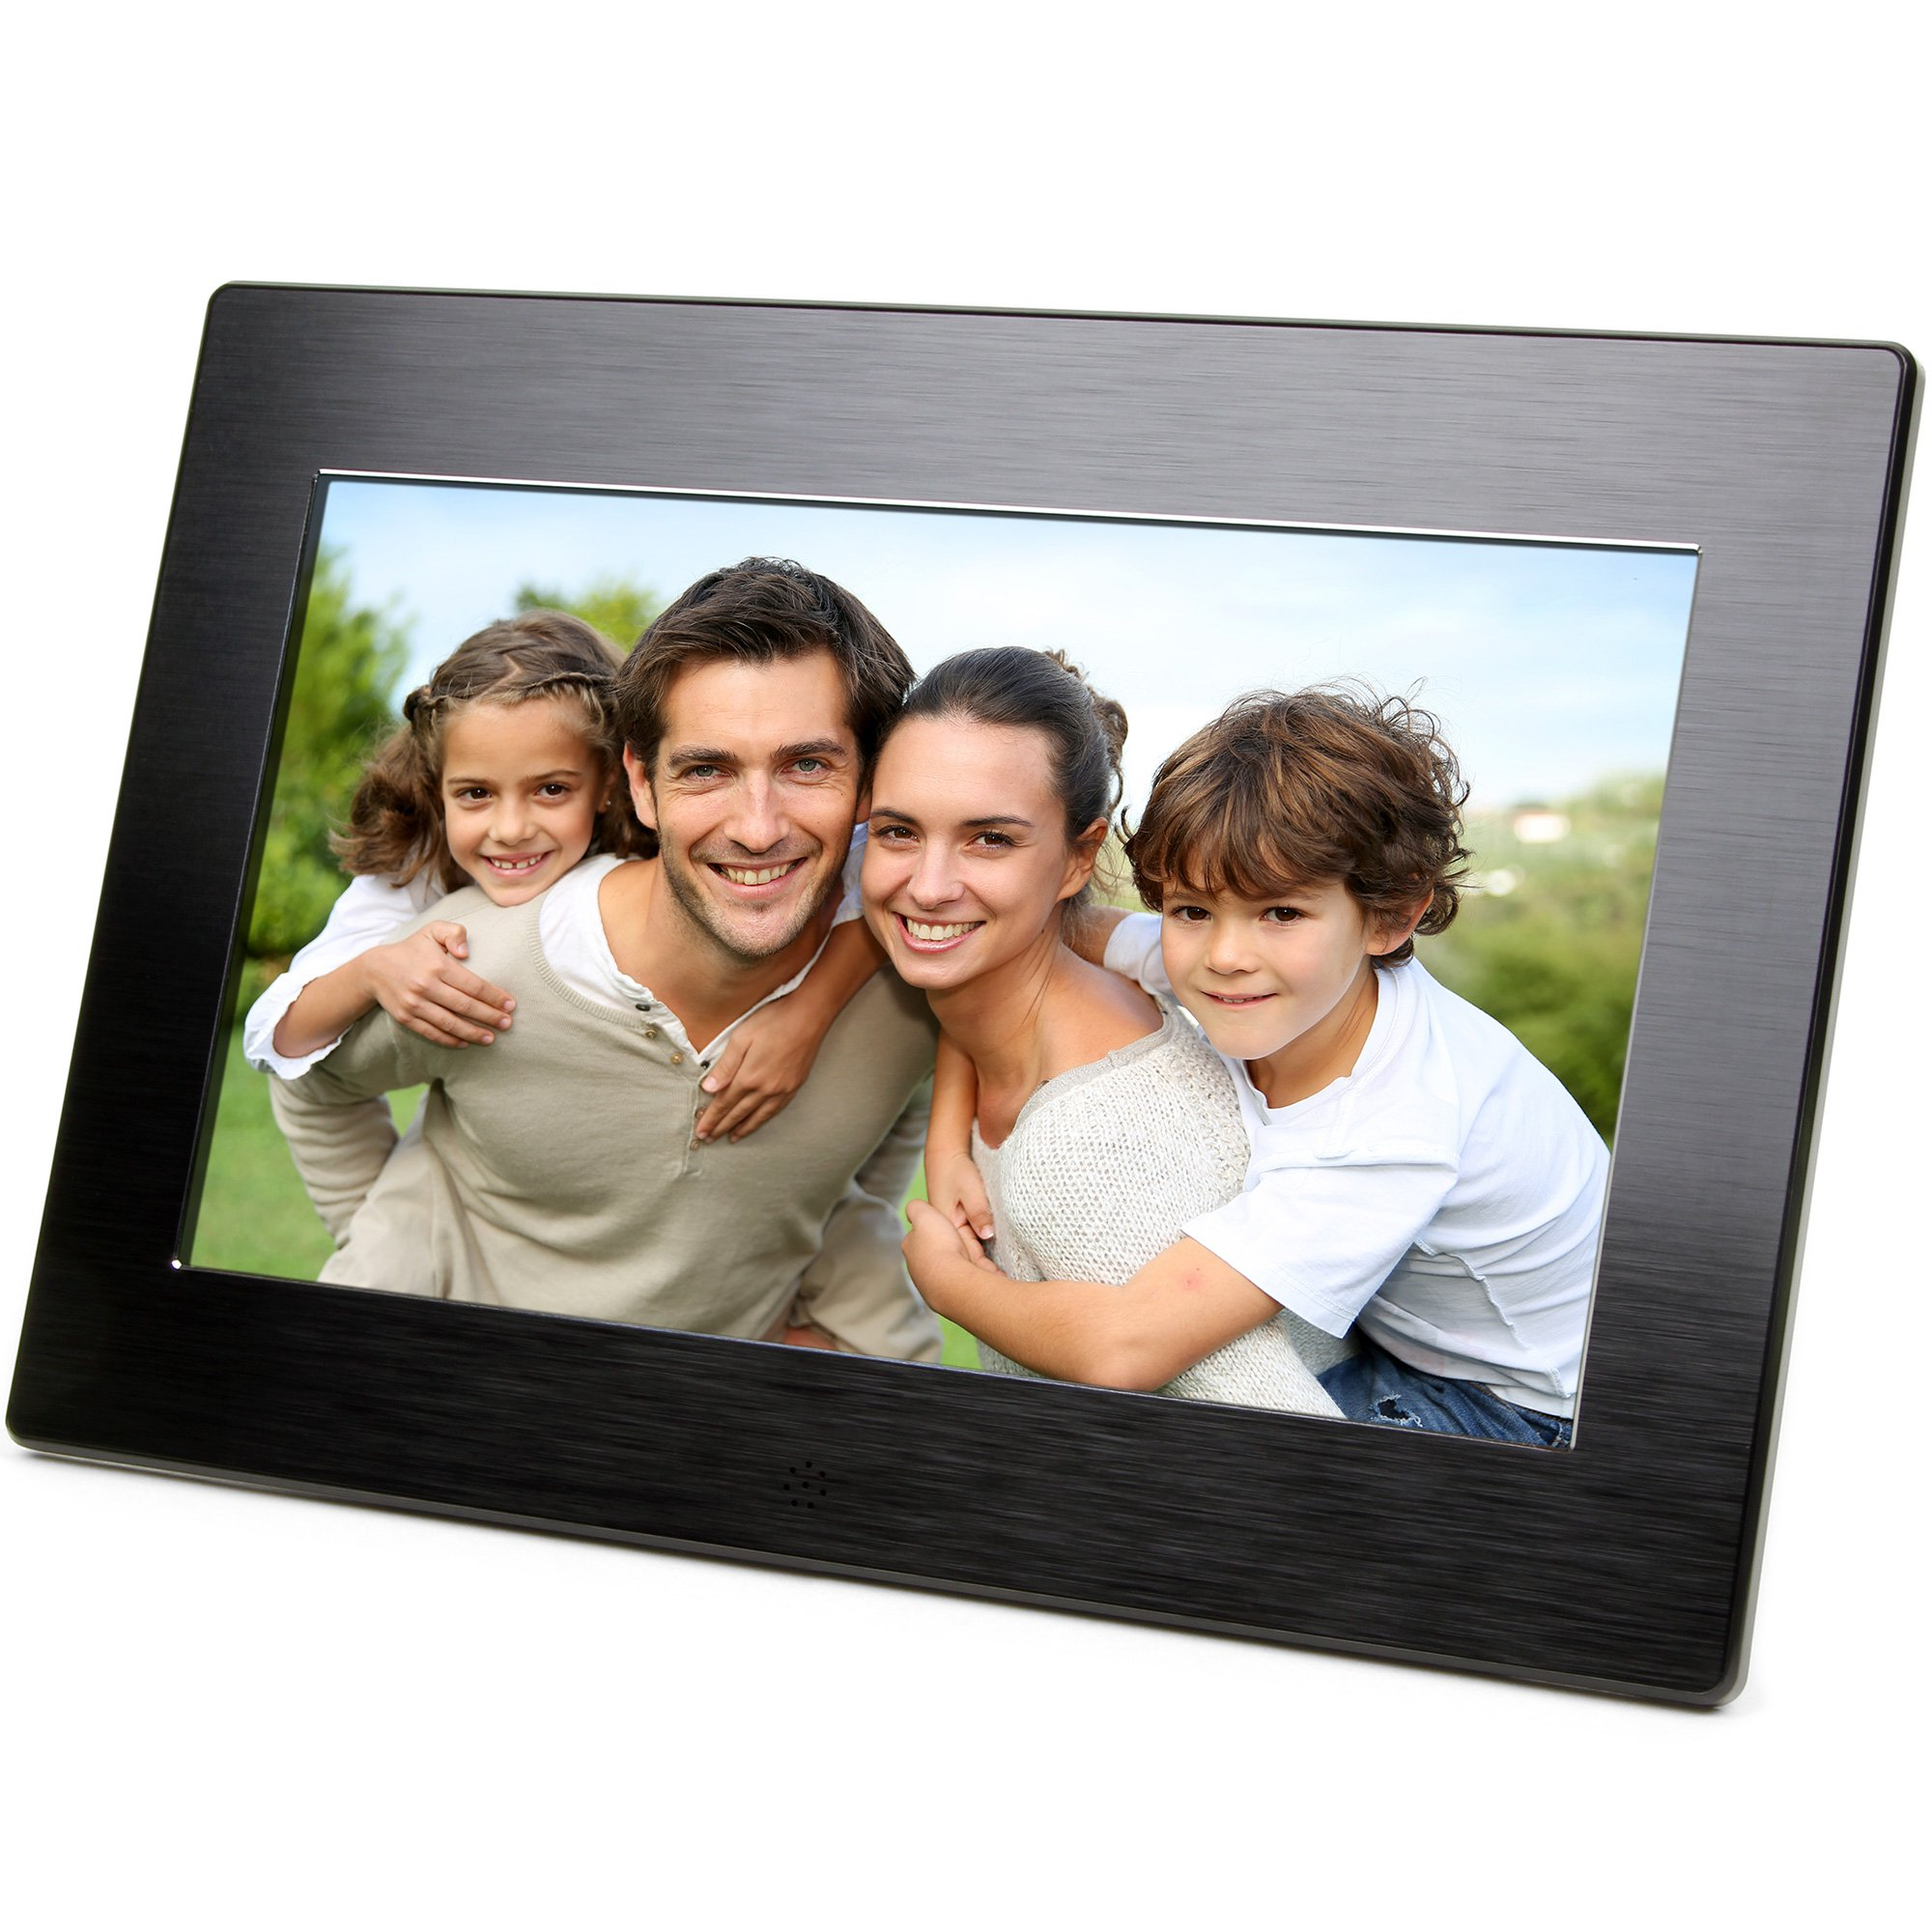 Micca 10-Inch Digital Photo Frame With High Resolution Widescreen LCD and Auto On/Off Timer (M1010z)